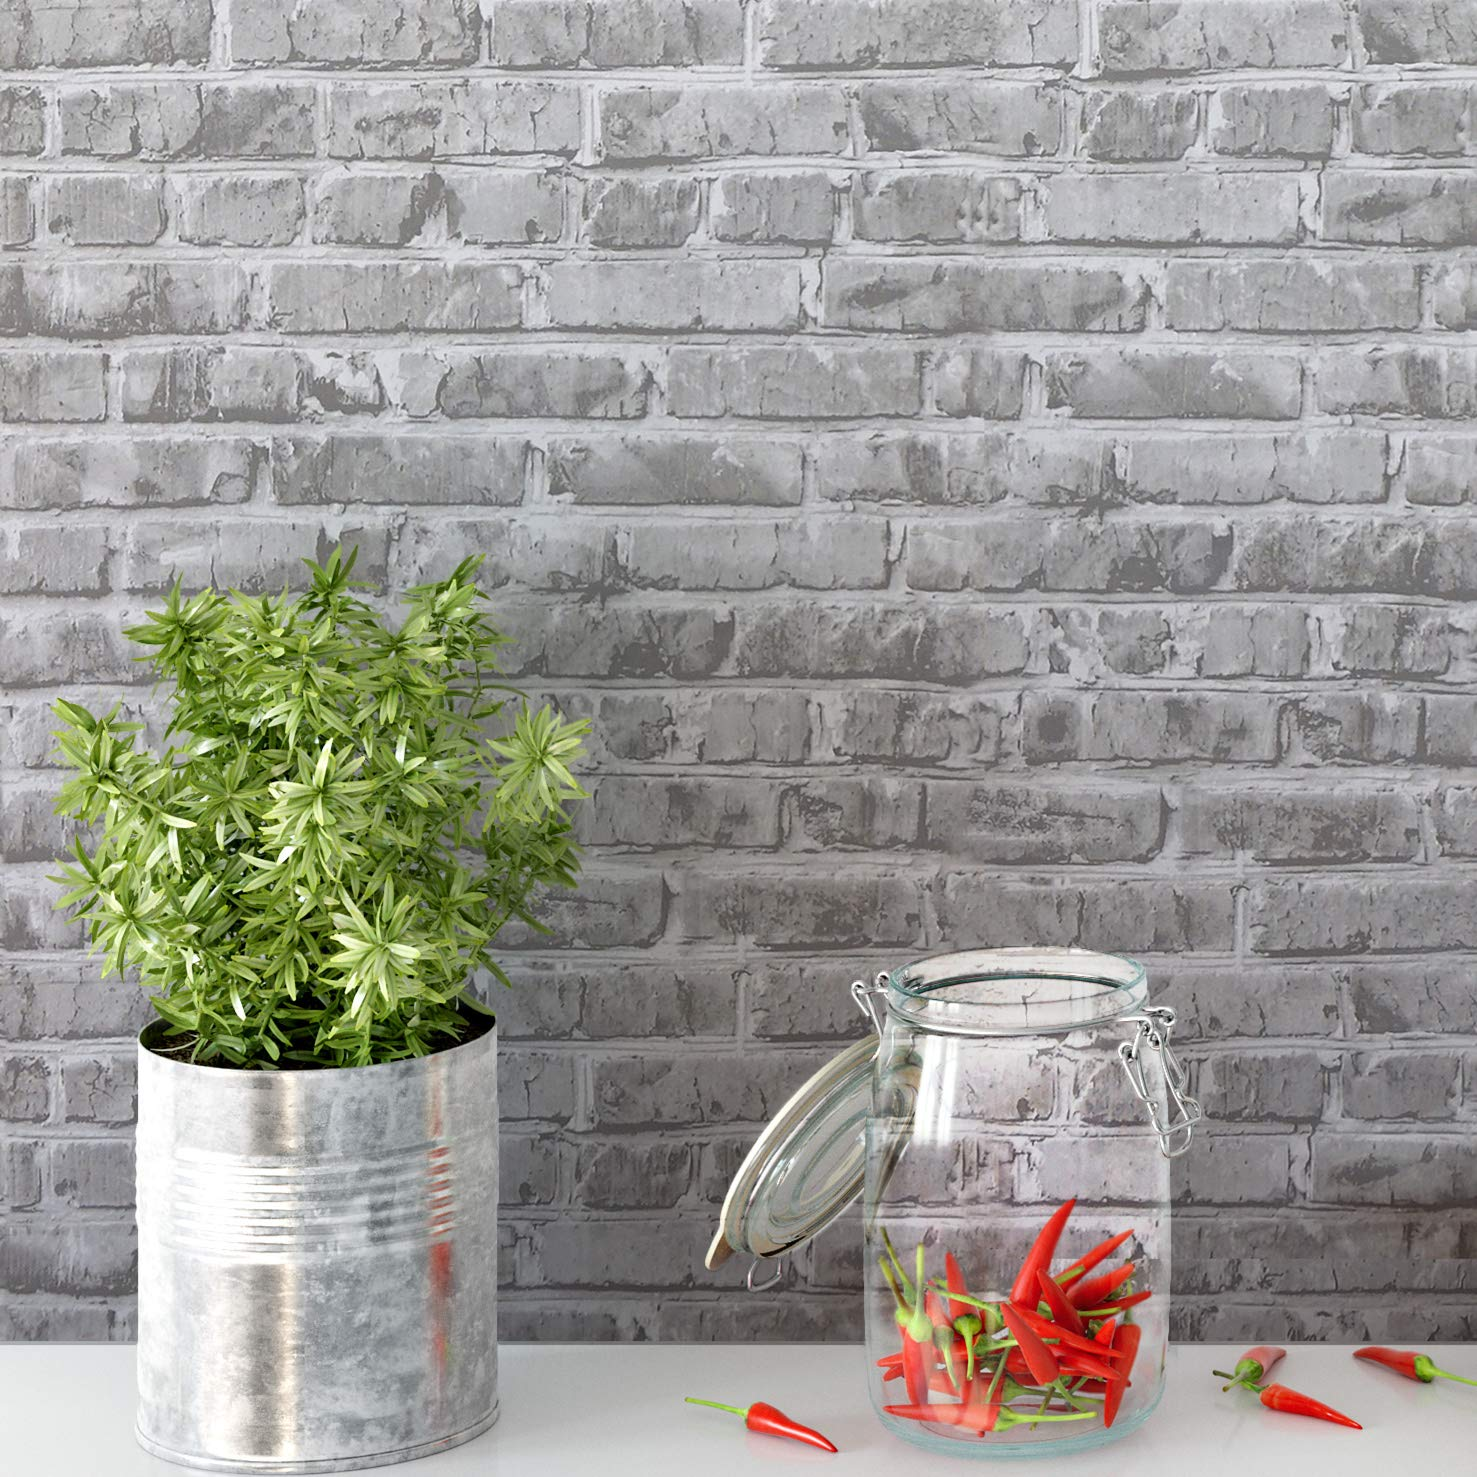 Timeet 17.7x196.9 inch Brick Peel and Stick Wallpaper Self-Adhesive Film Brick Textured Wallpaper Removable Film for Room Decor